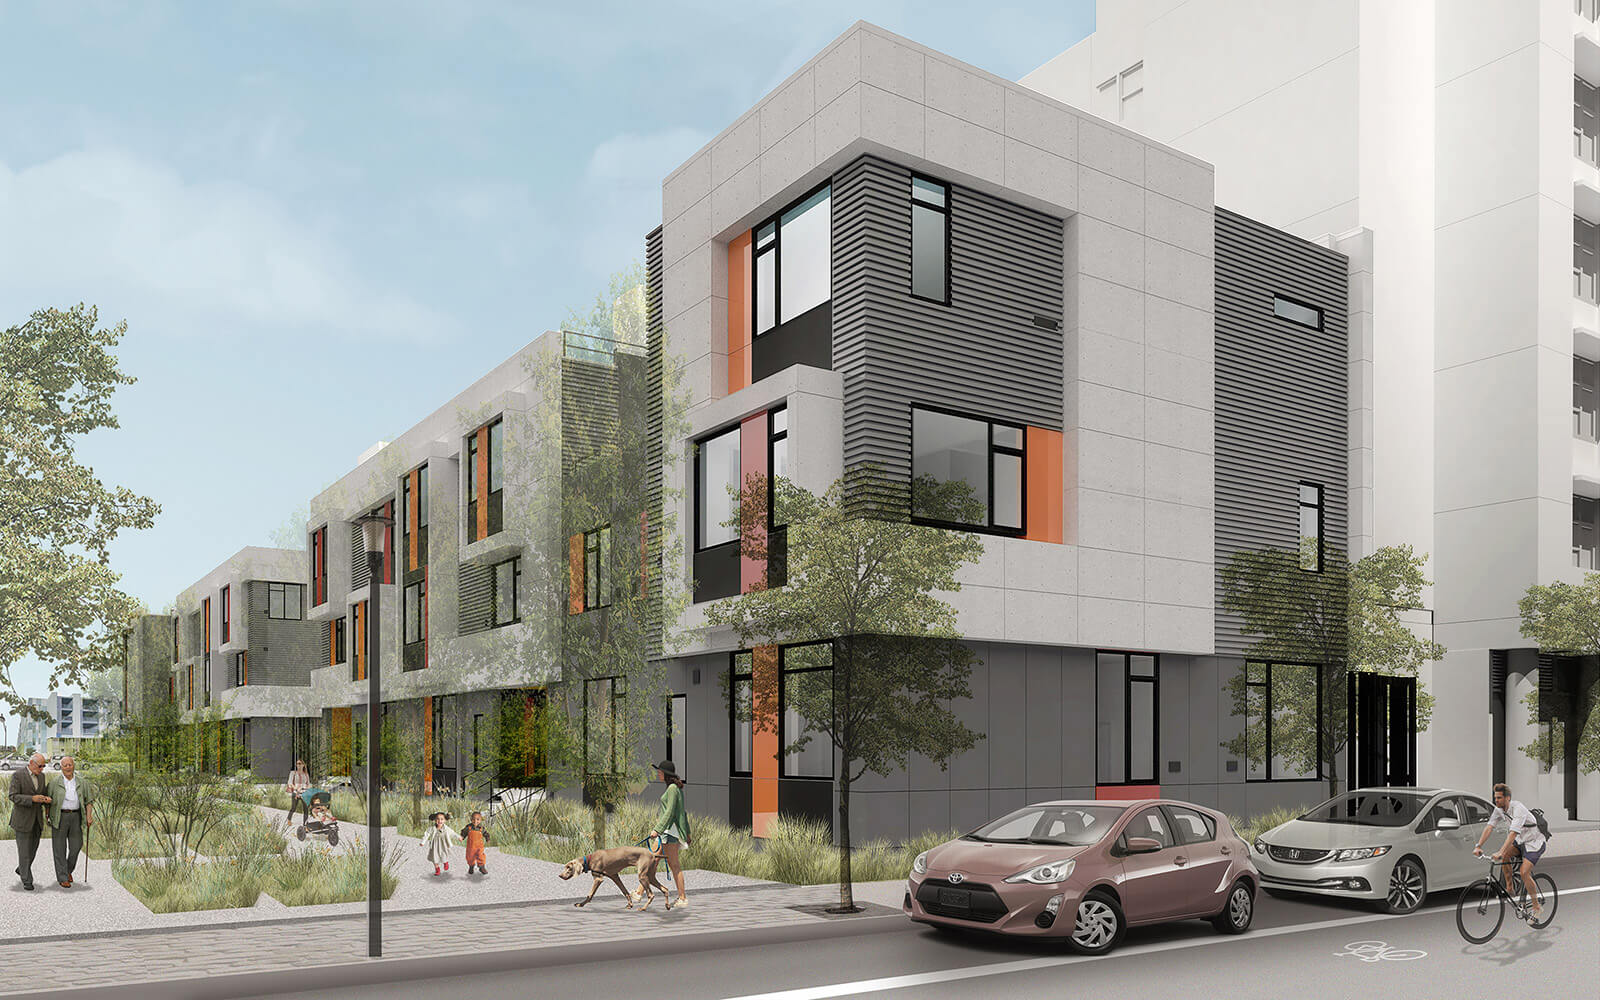 studio vara multifamily 626 mission bay blvd. exterior rendering